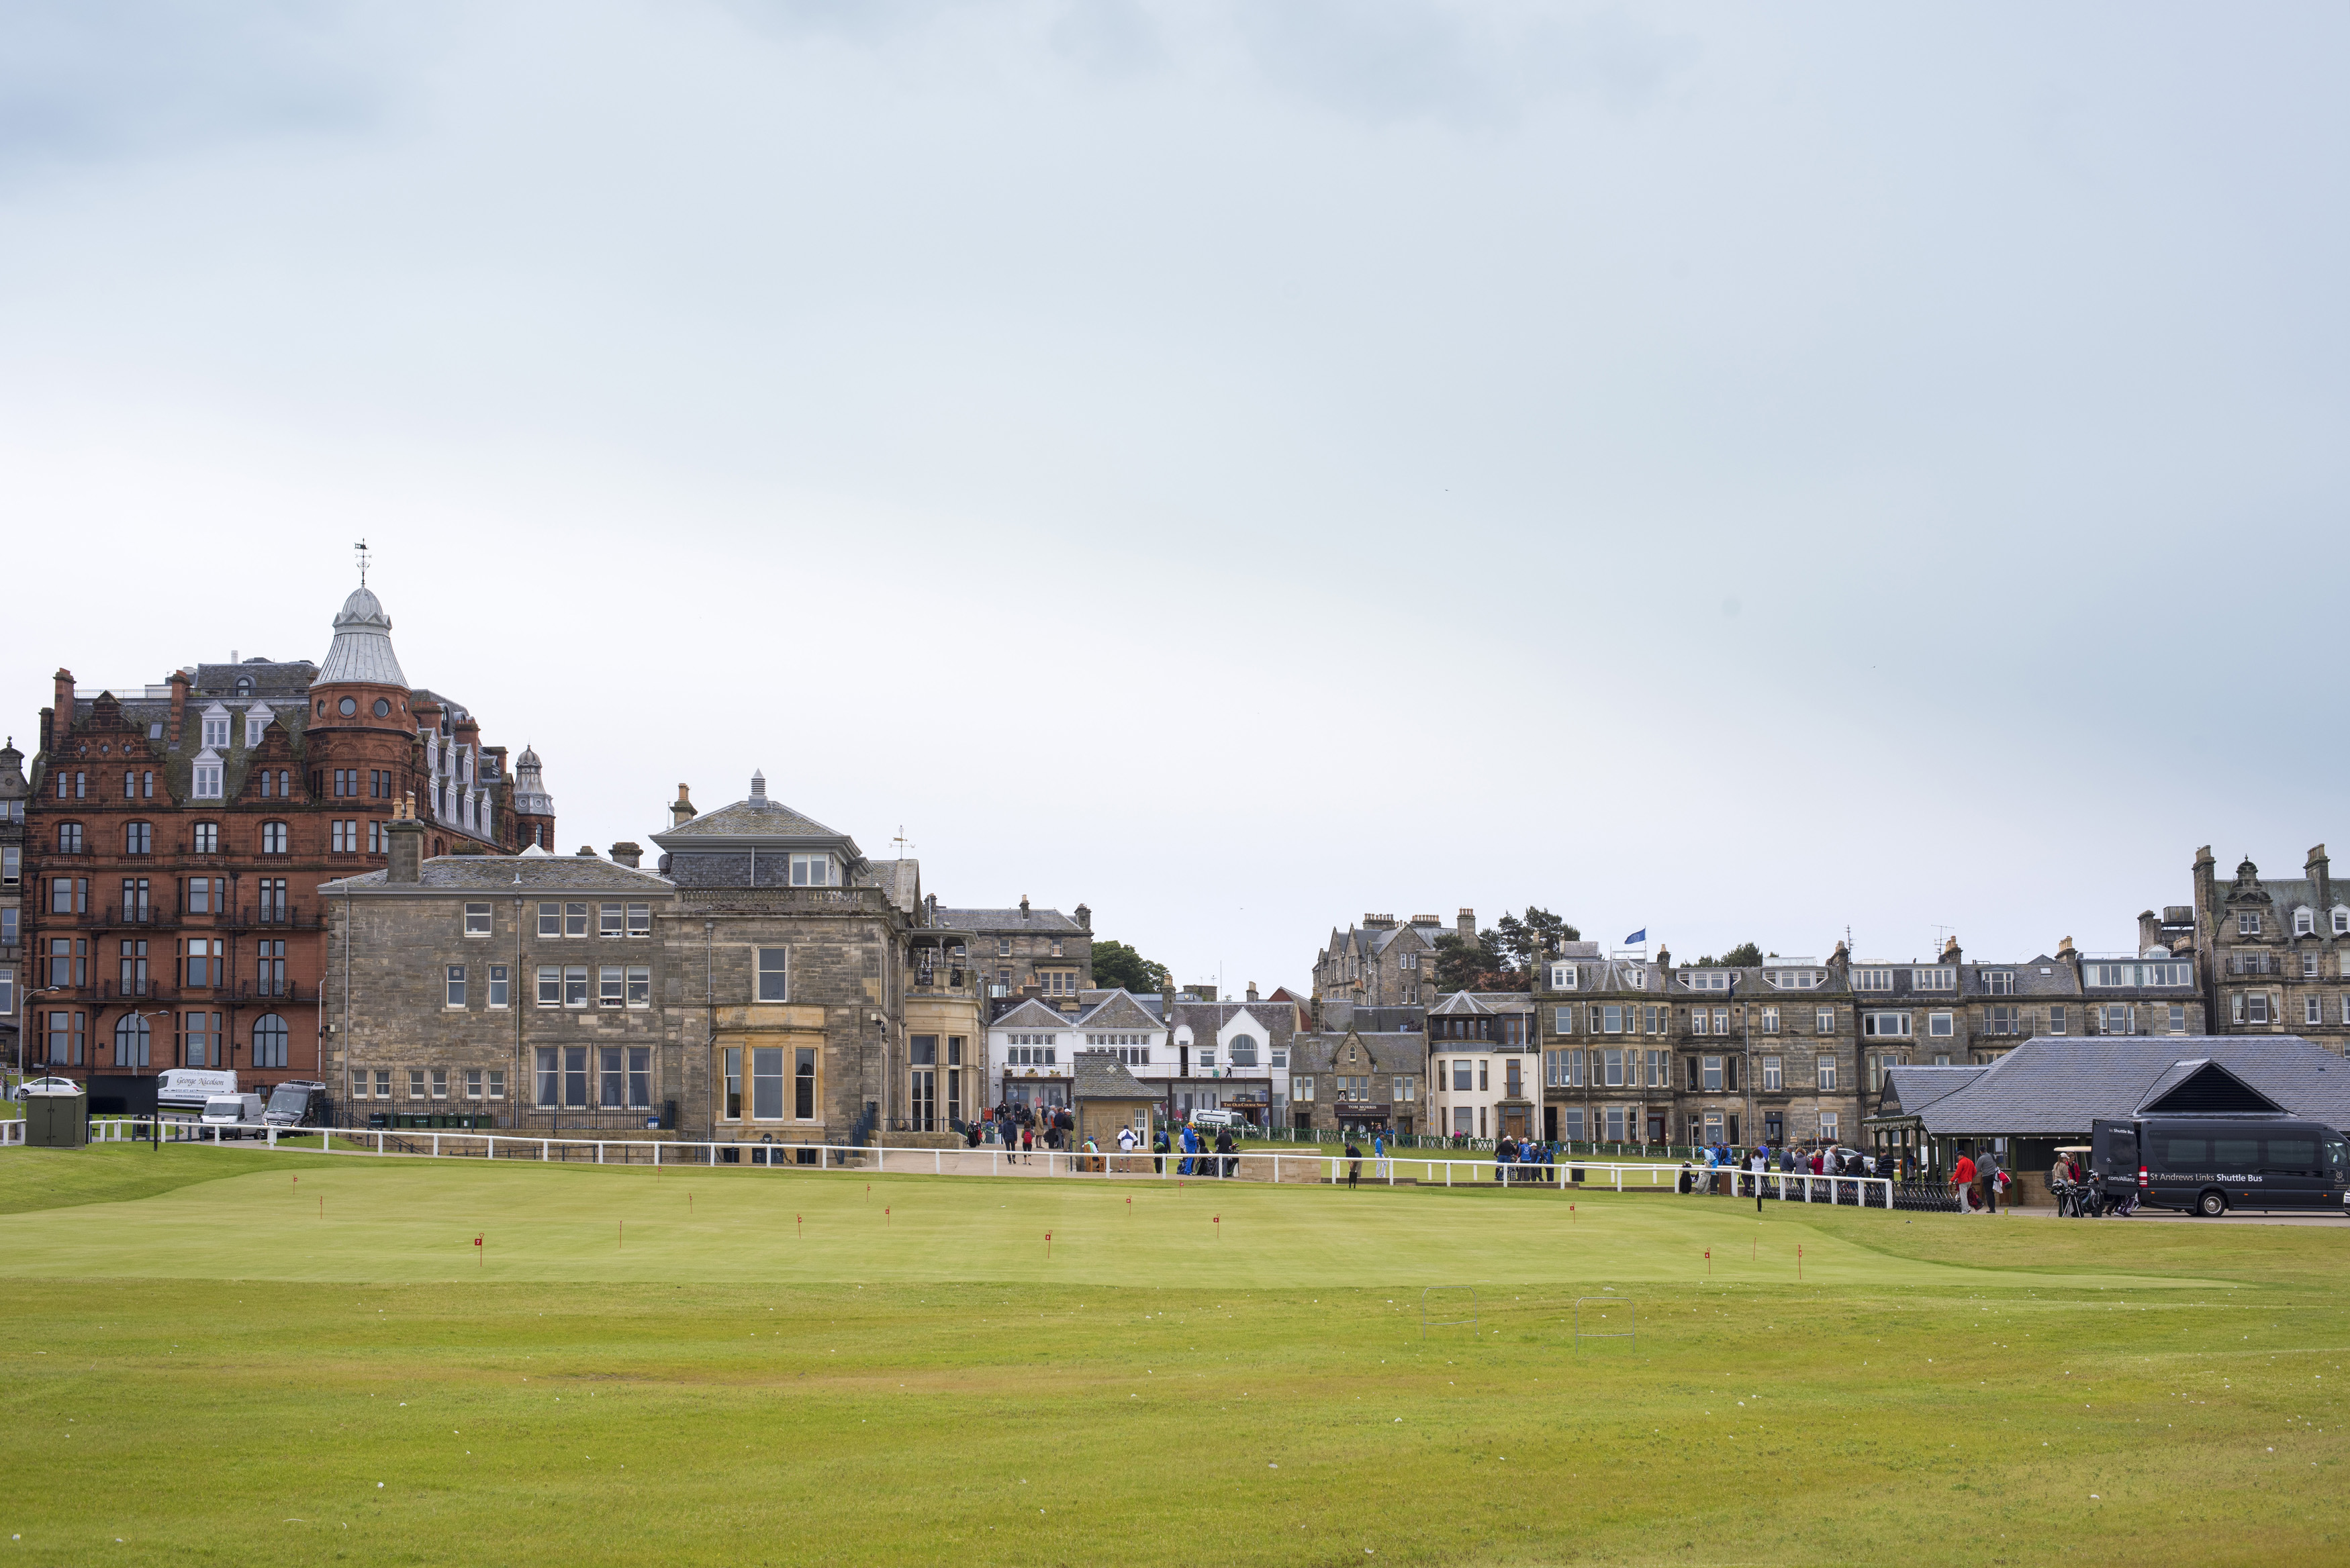 View across an open field of St Andrews, Scotland with its historic architecture in a scenic landscape for a travel and tourism concept